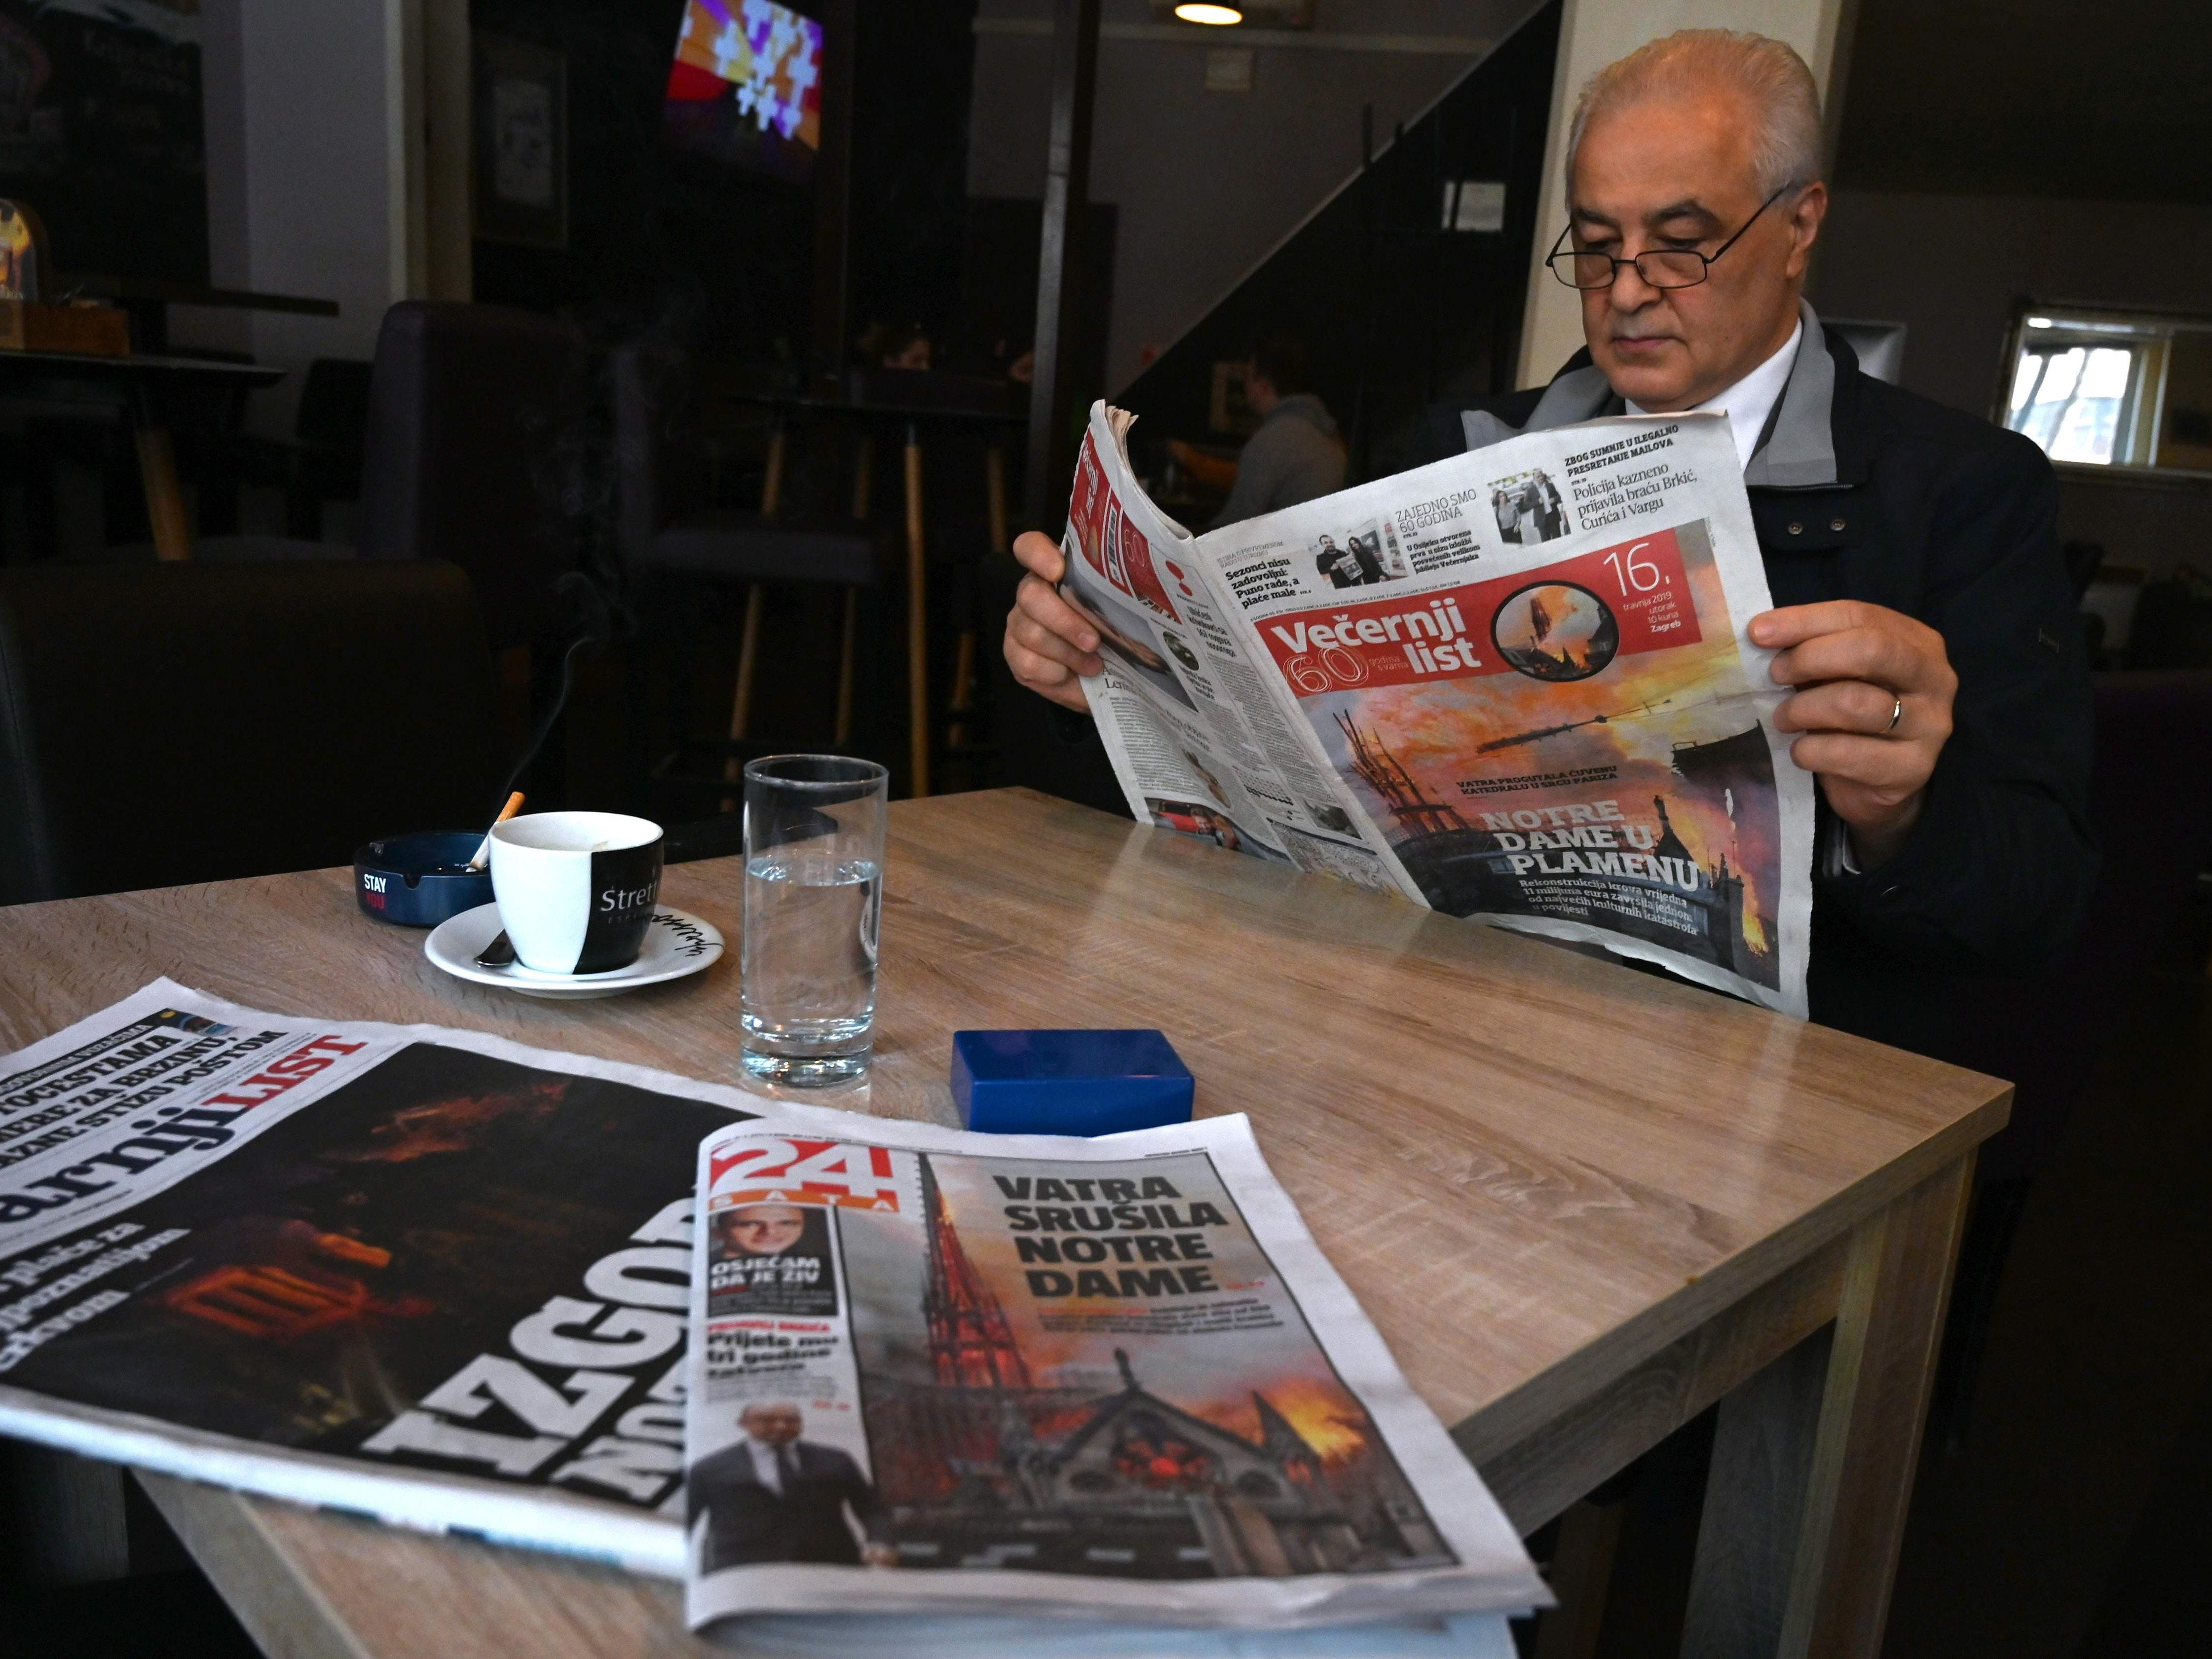 A Croatian man reads a daily newspapers with front page coverage of the Notre-Dame Cathedral fire in Paris, in Zagreb, on April 16, 2019.